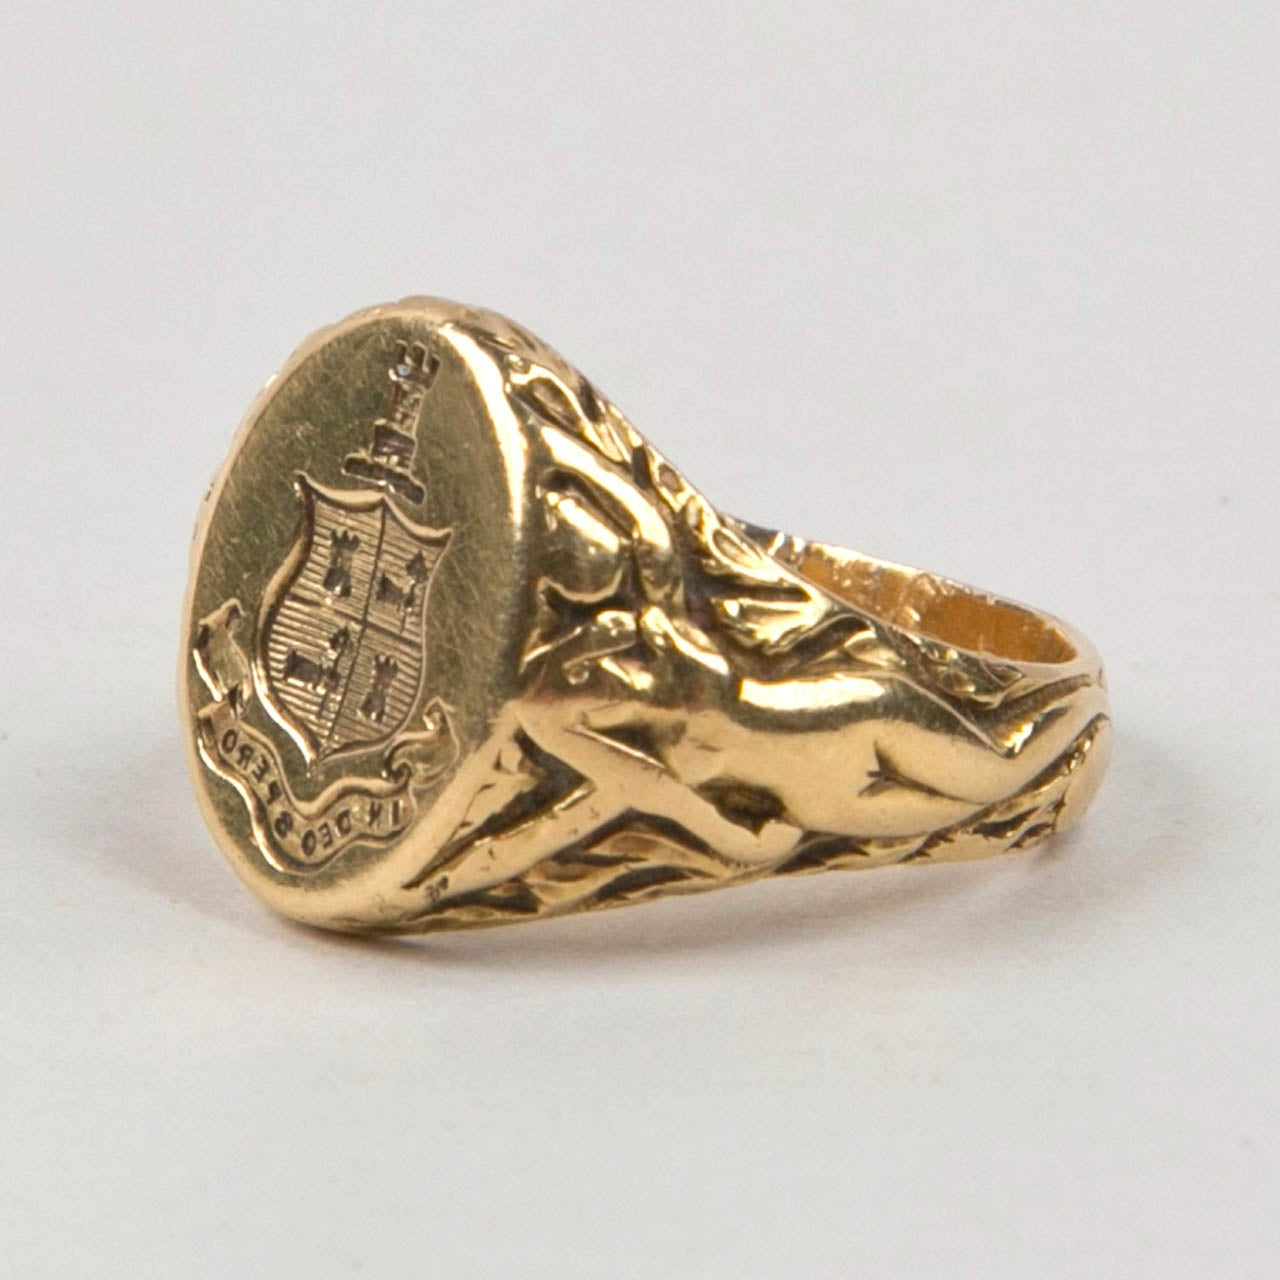 co antique gold signet ring image 6